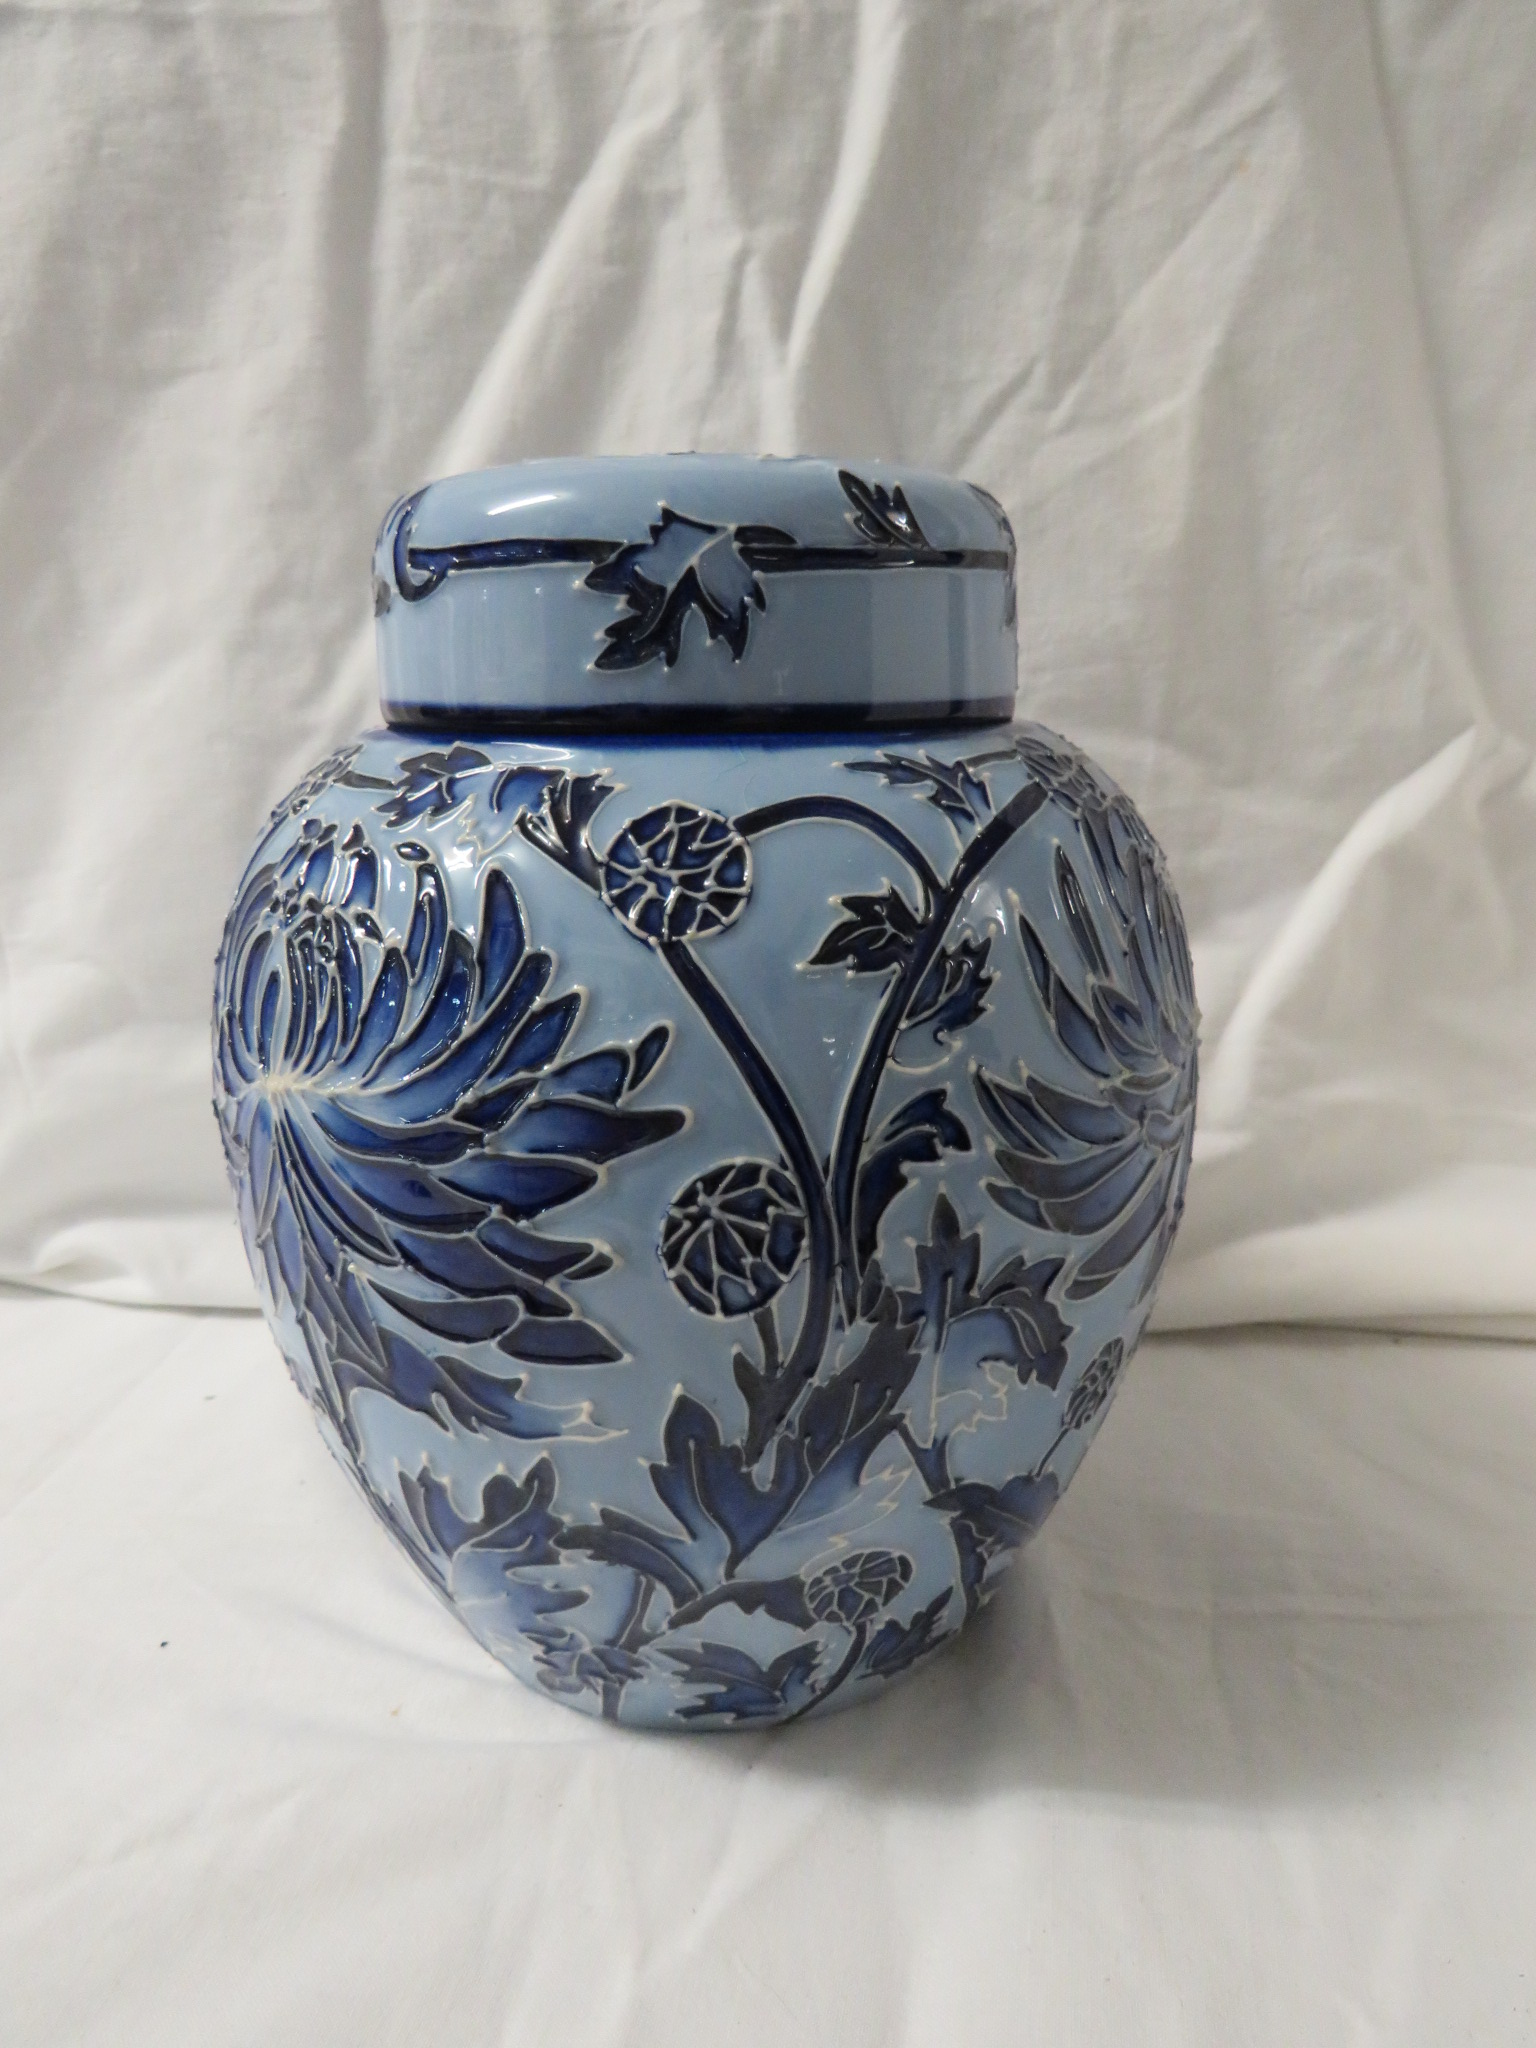 Lot 13 - Moorcroft pottery ginger jar with cover in the style of Macintyre Florian ware, pale blue ground